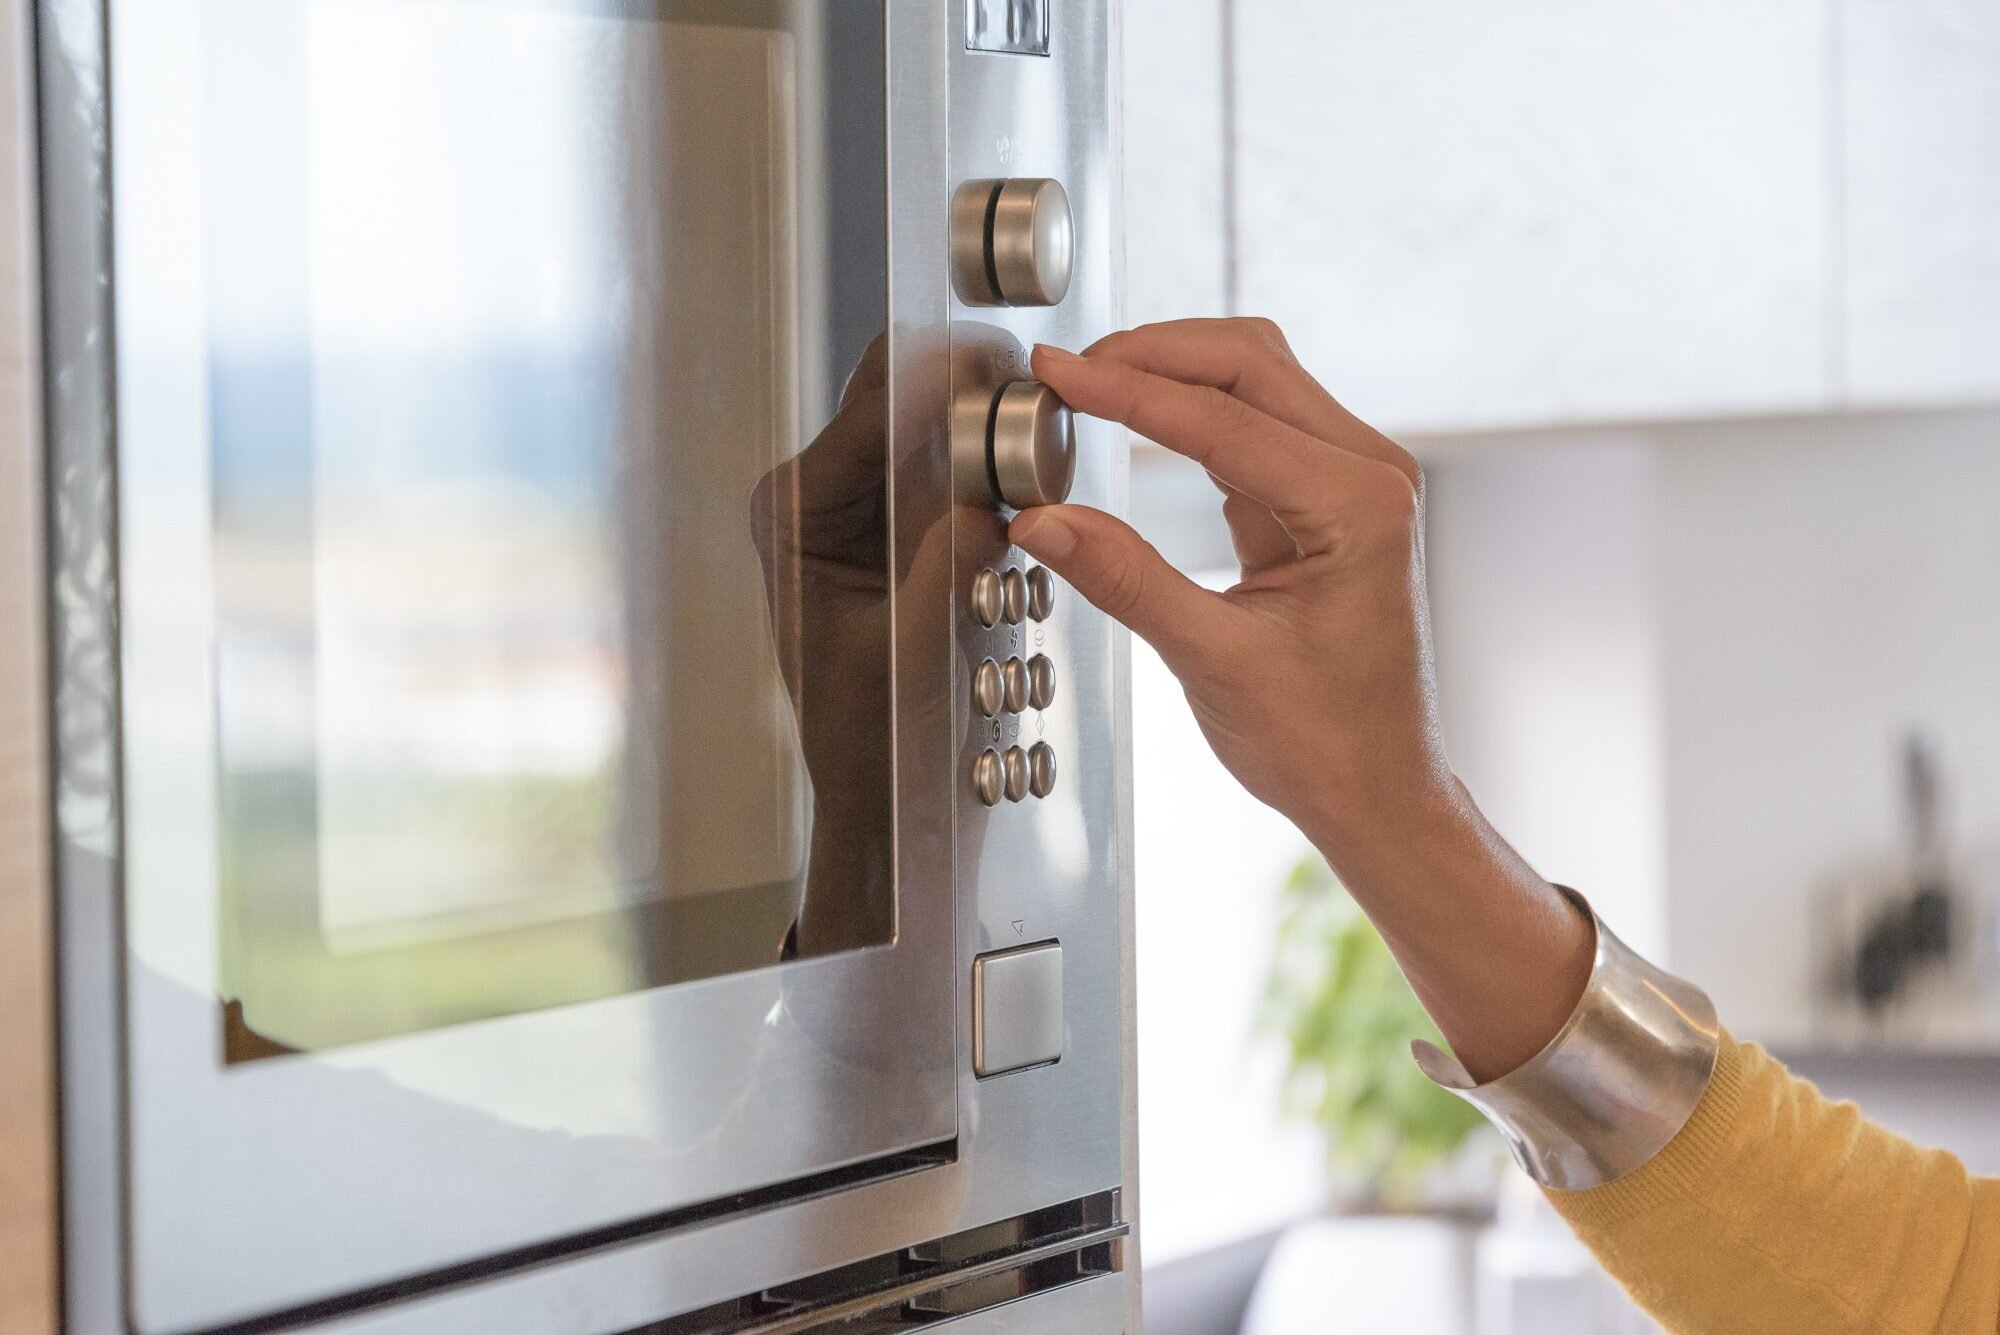 349b58e27 23 Cooking Uses for Your Microwave